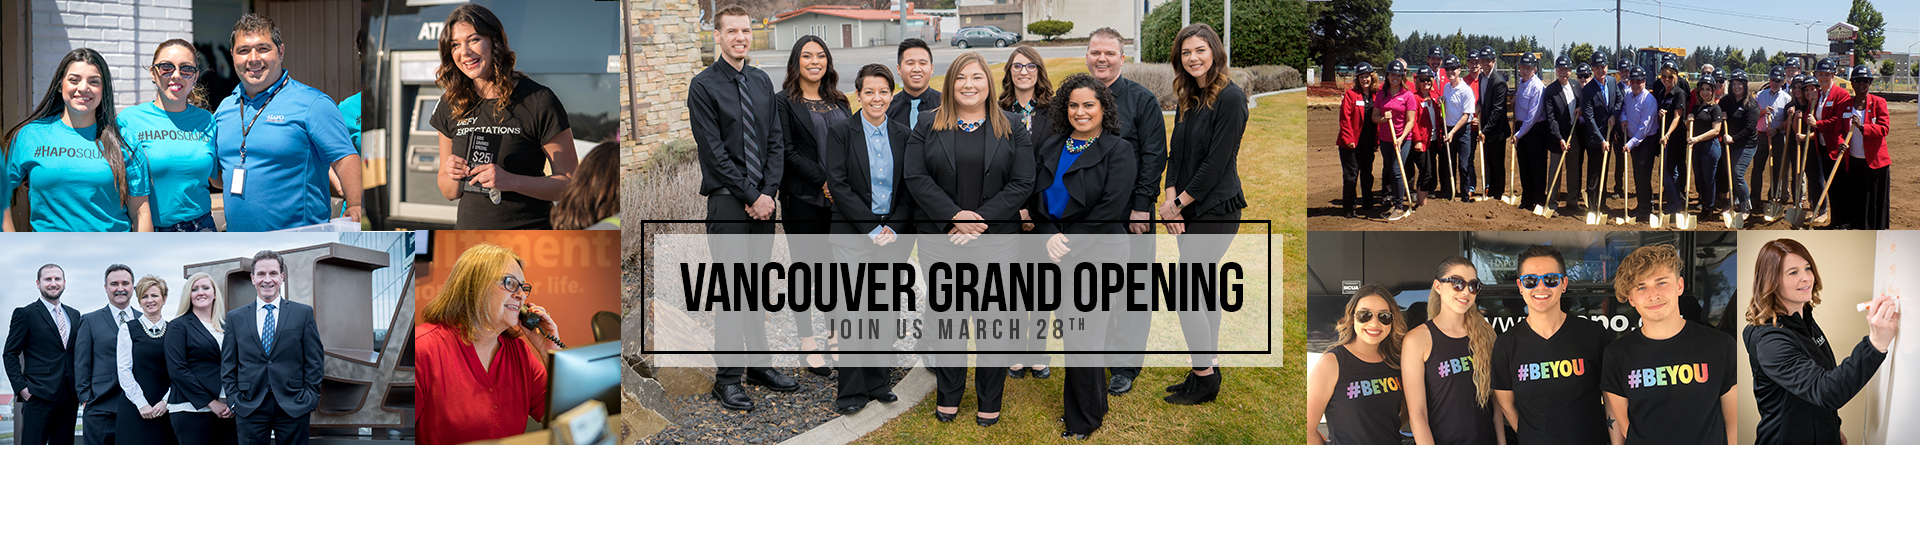 Vancouver-Grand-Opening-Rotator-v6